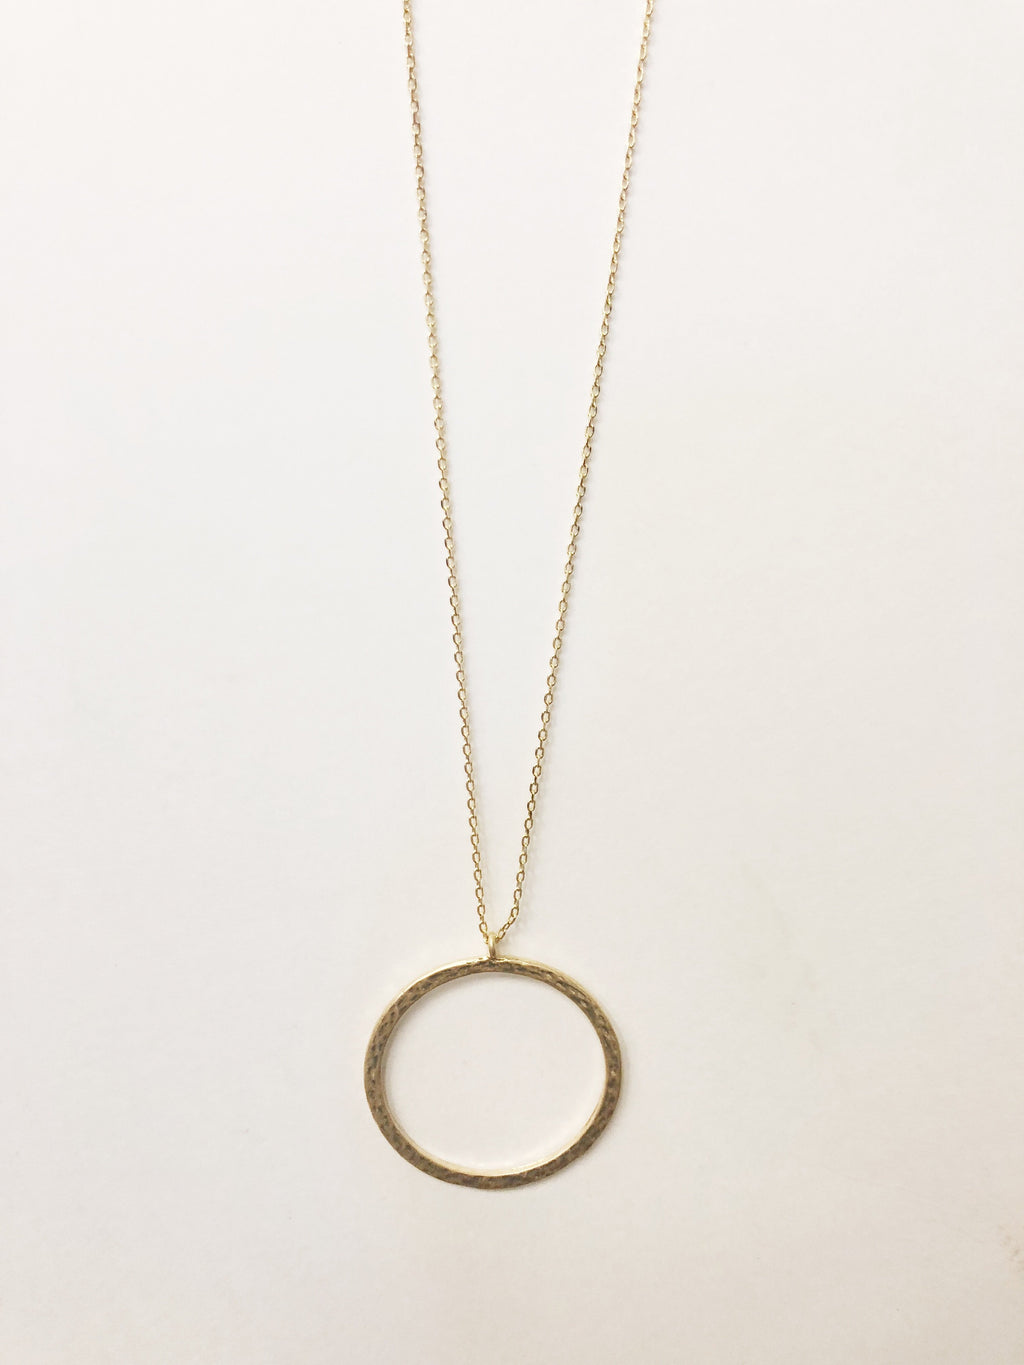 Searching For You Necklace